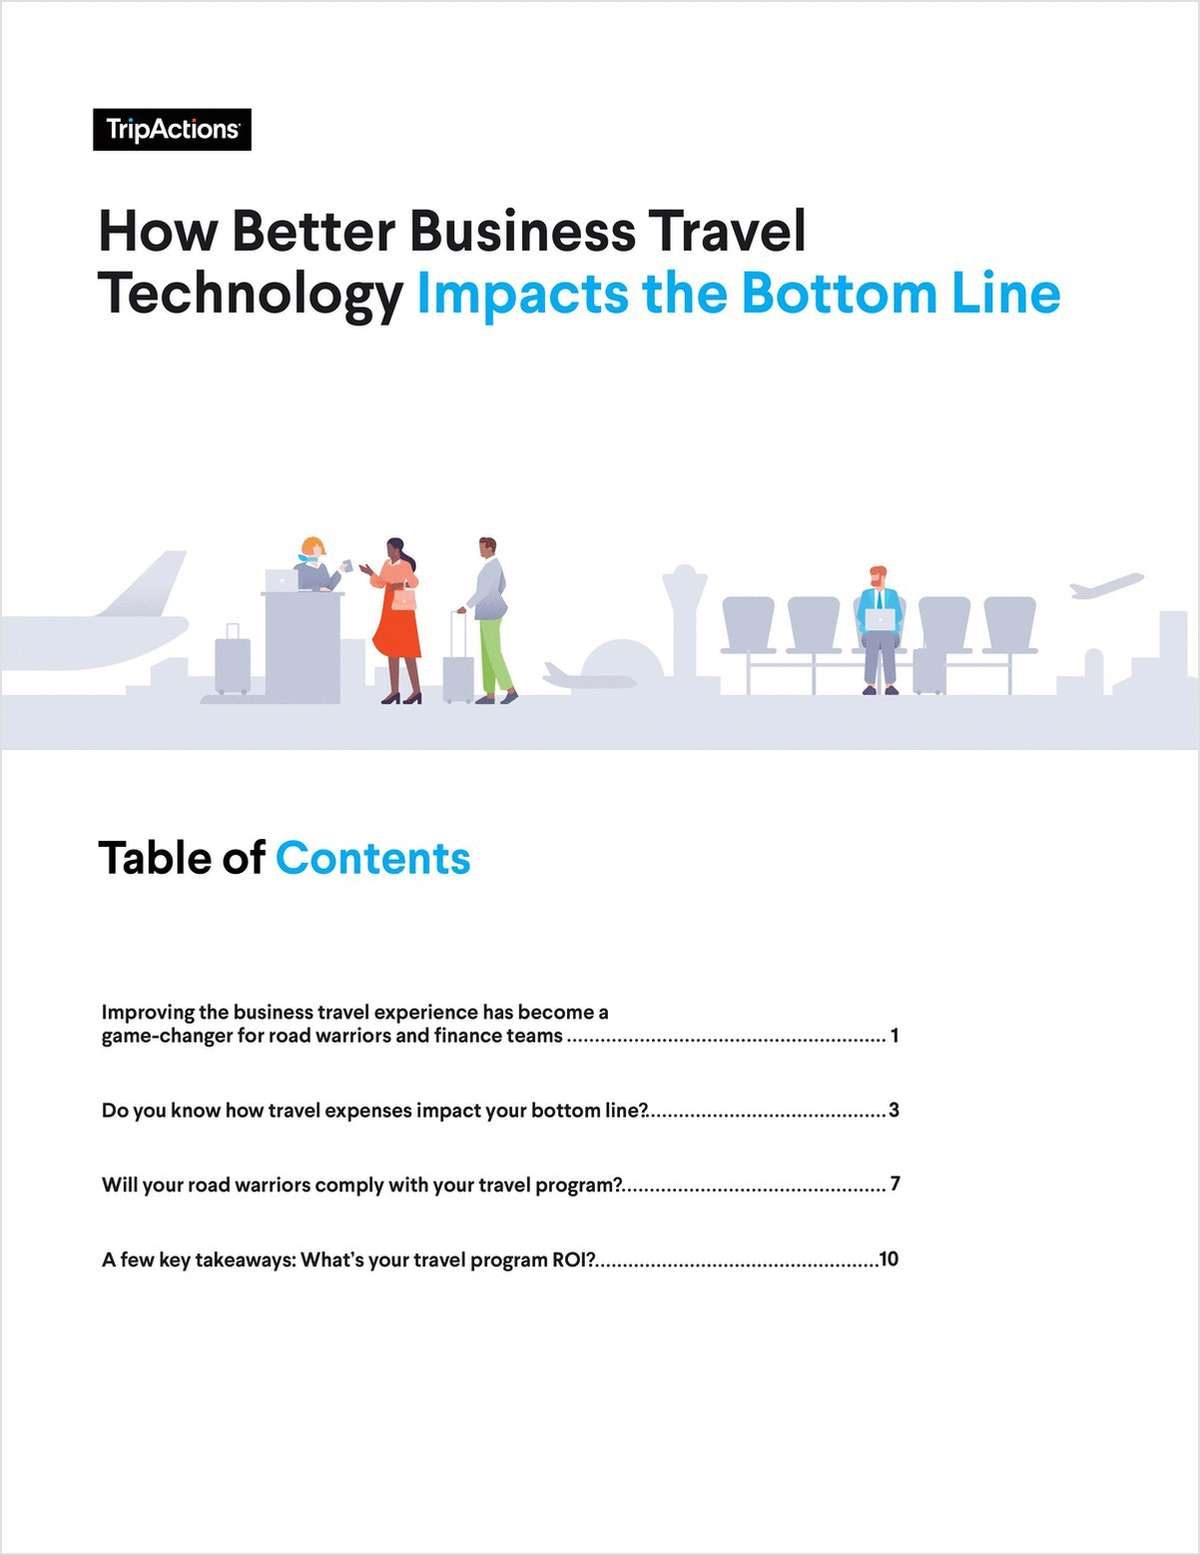 How Better Business Travel Technology Impacts the Bottom Line